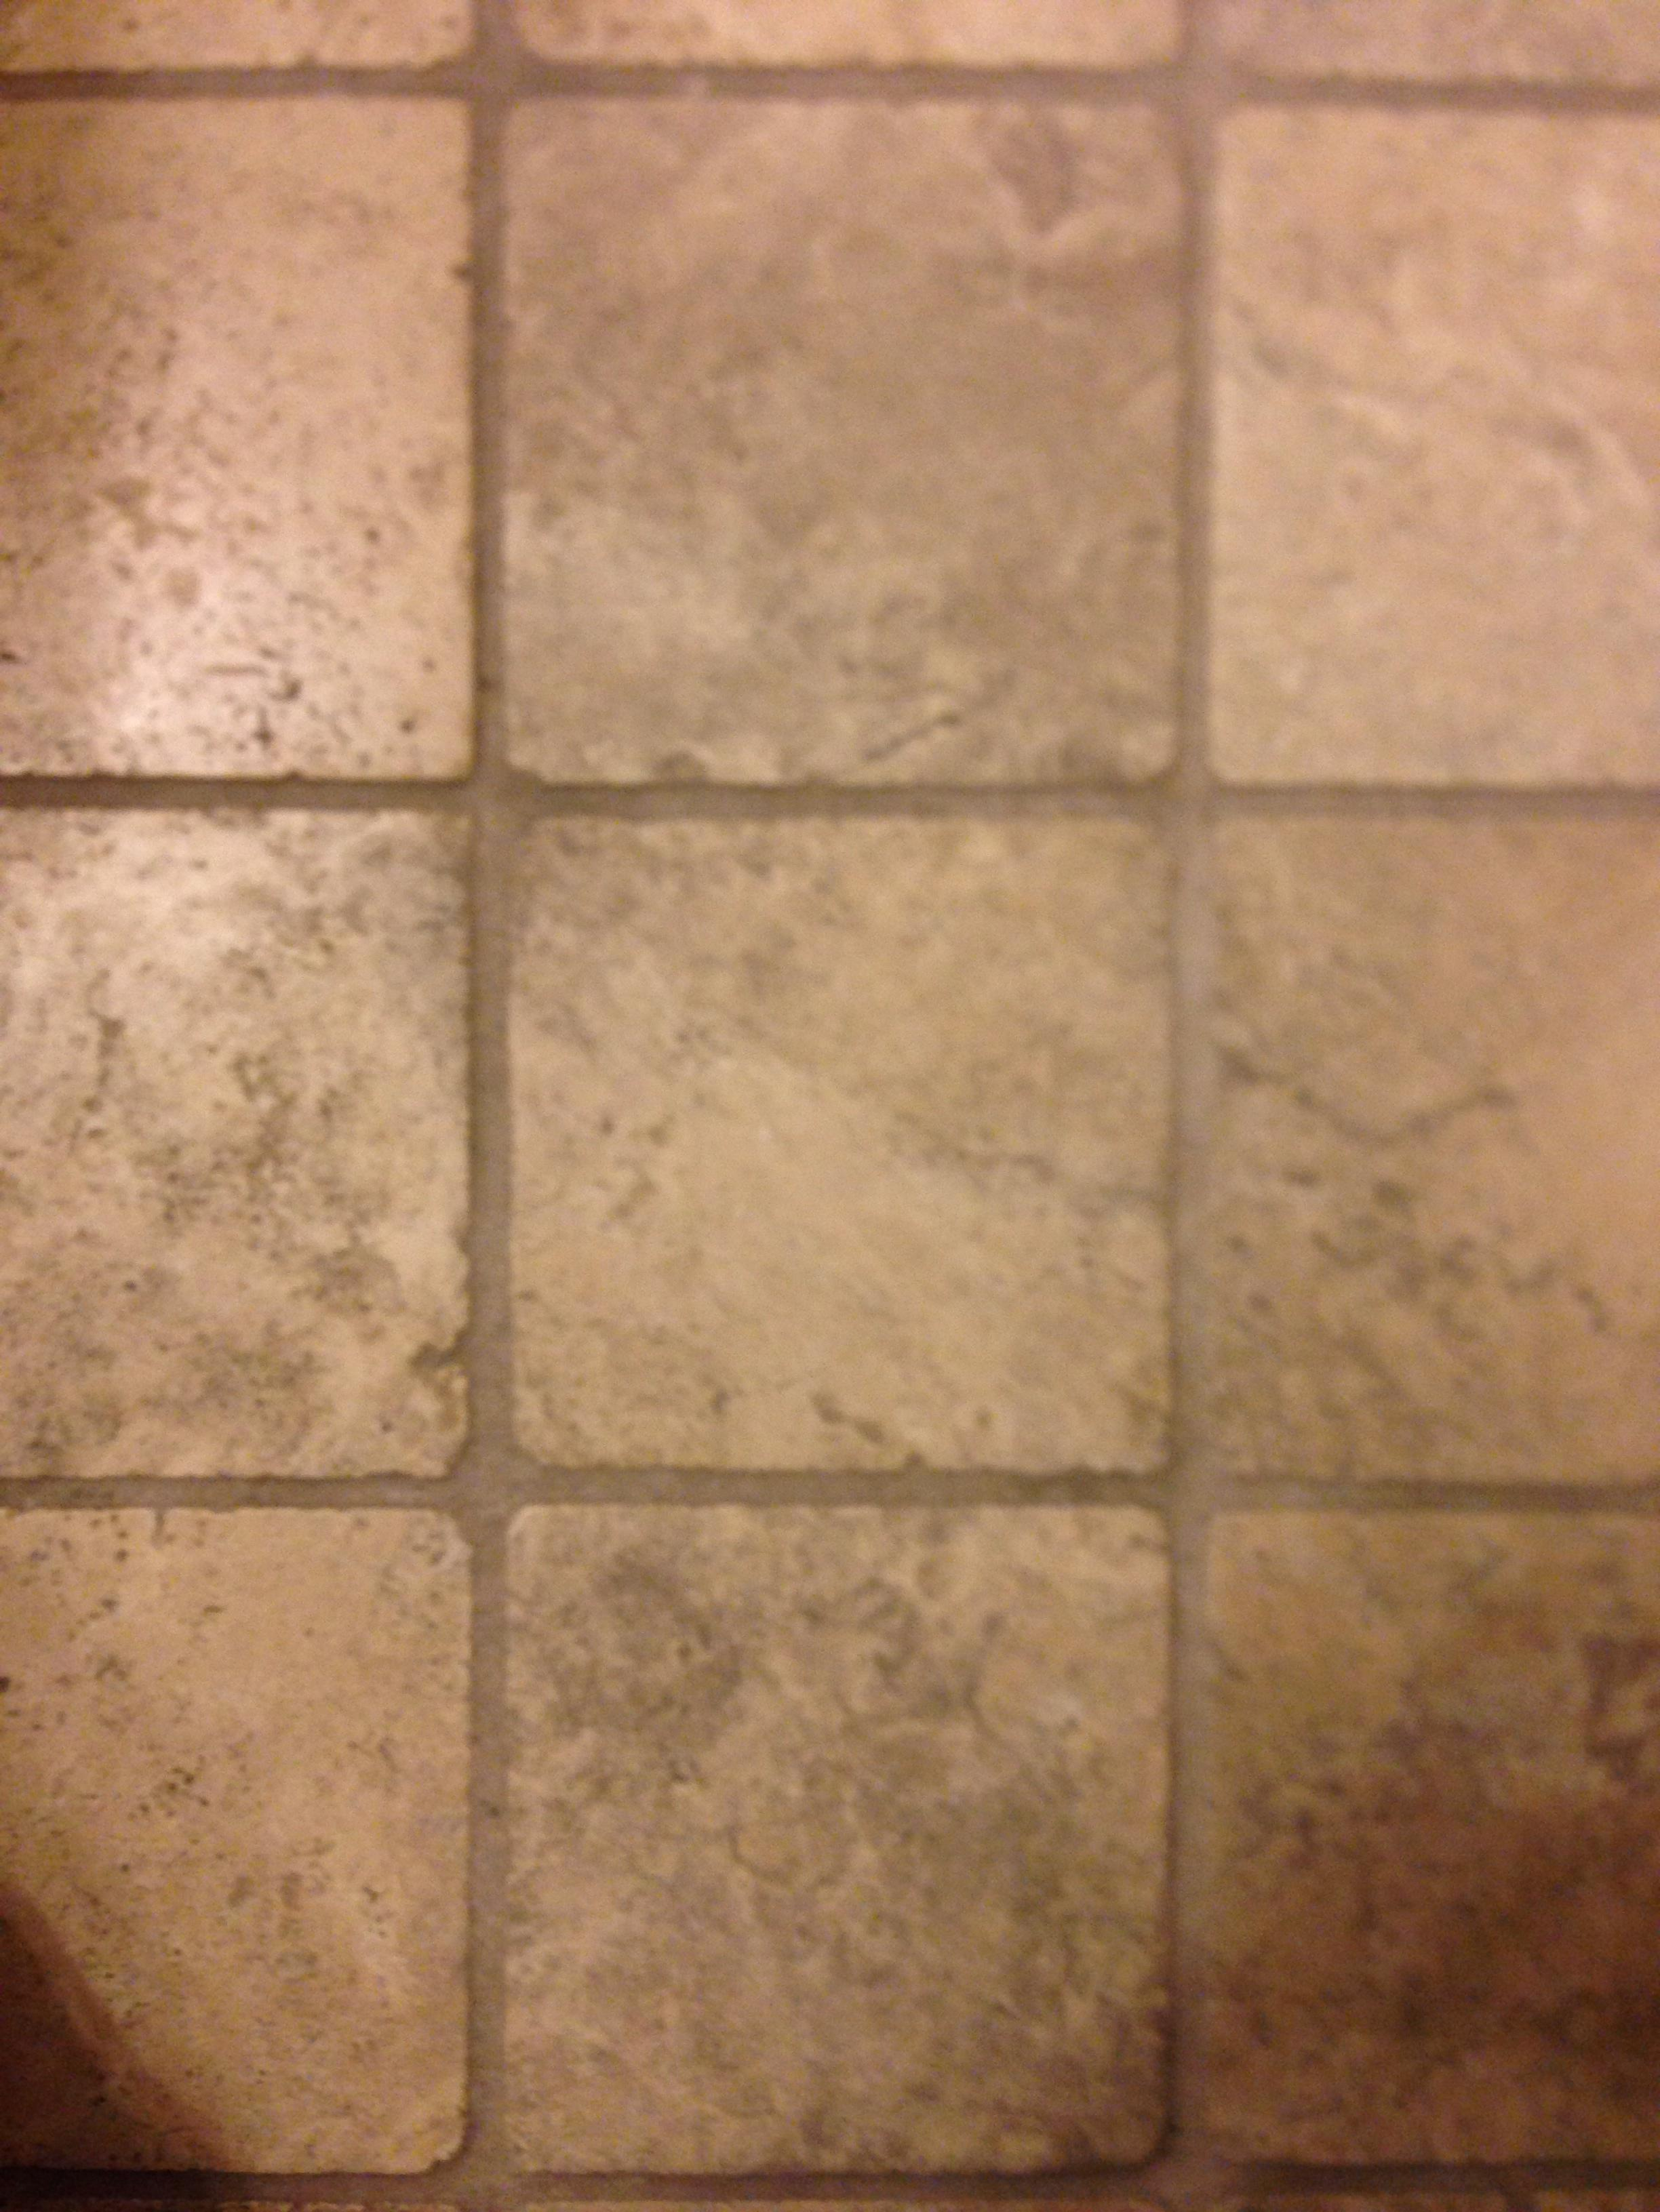 Tackling Tile And Grout Cleaning Naturally Zerorez Atlanta